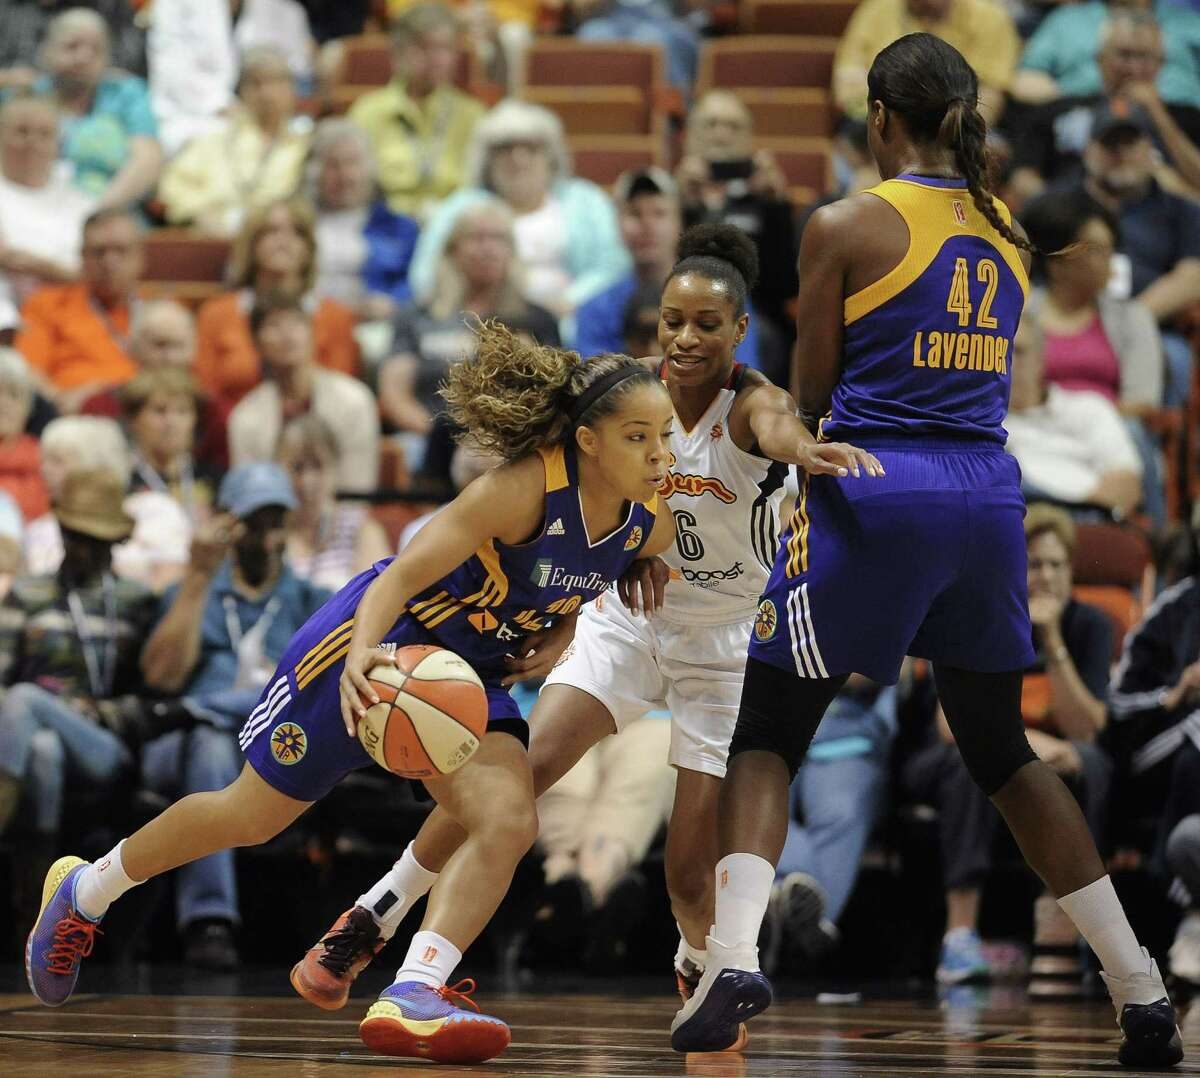 Los Angeles Sparksí Jasmine Lister, left, dribbles around Connecticut Sunís Jasmine Thomas, center, as Sparksí Jantel Lavender sets a pick during the first half of a WNBA basketball game, Friday, June 26, 2015, in Uncasville, Conn. (AP Photo/Jessica Hill)